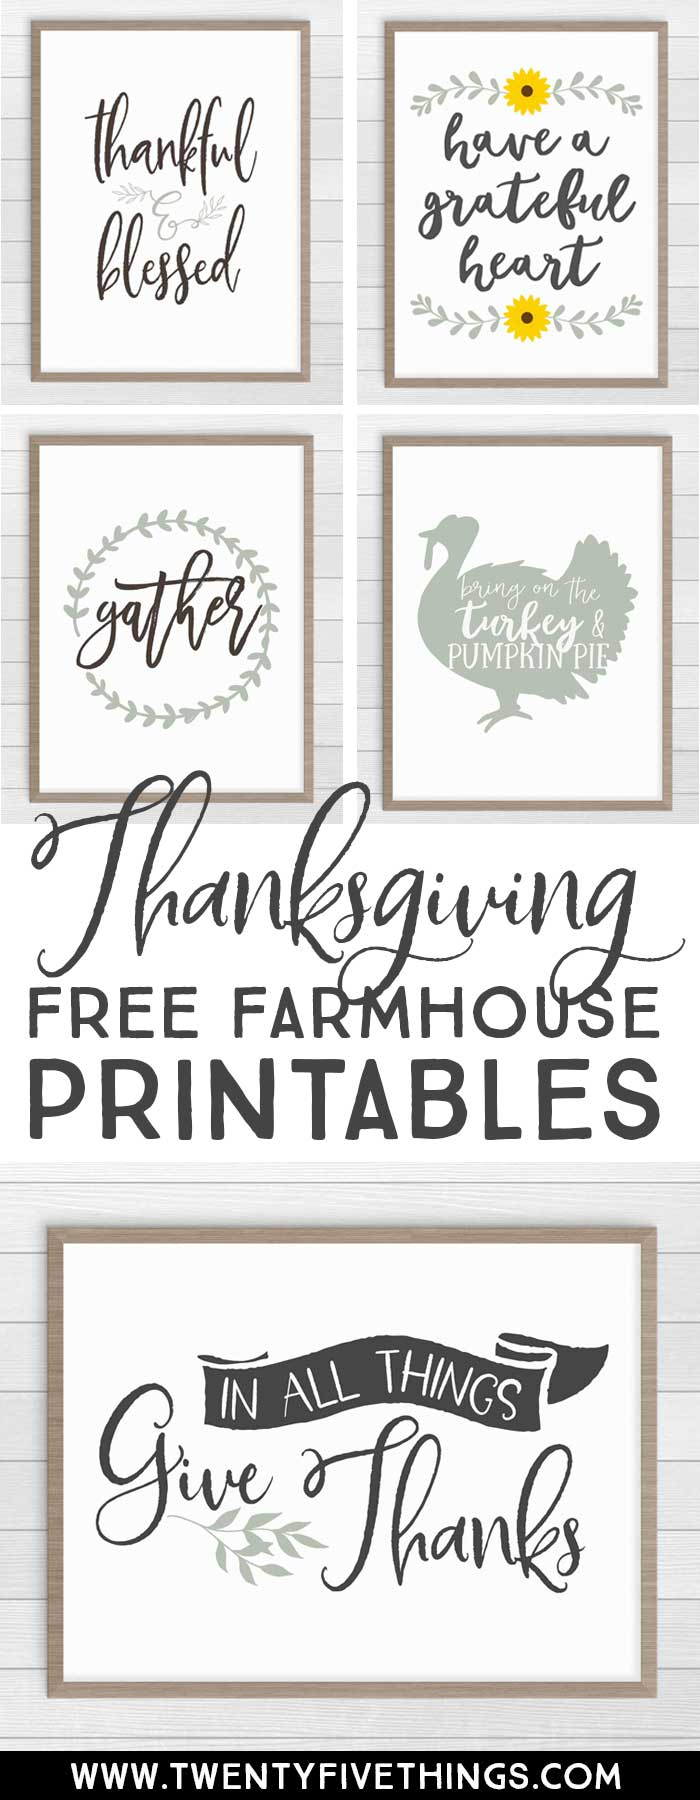 It is a picture of Critical Farmhouse Free Printables